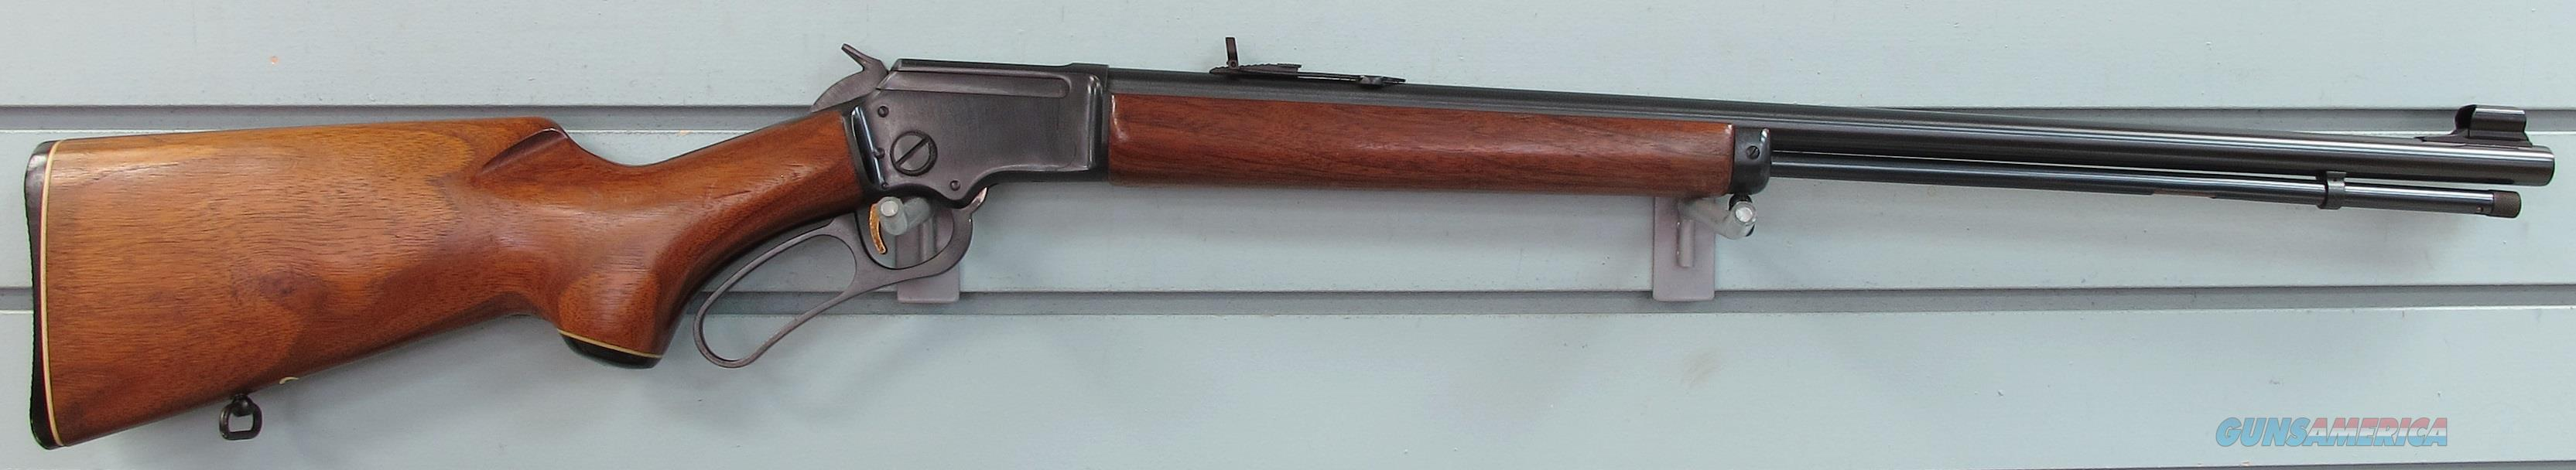 MARLIN 22 L.R. GOLDEN - 39A  Guns > Rifles > Marlin Rifles > Modern > Lever Action